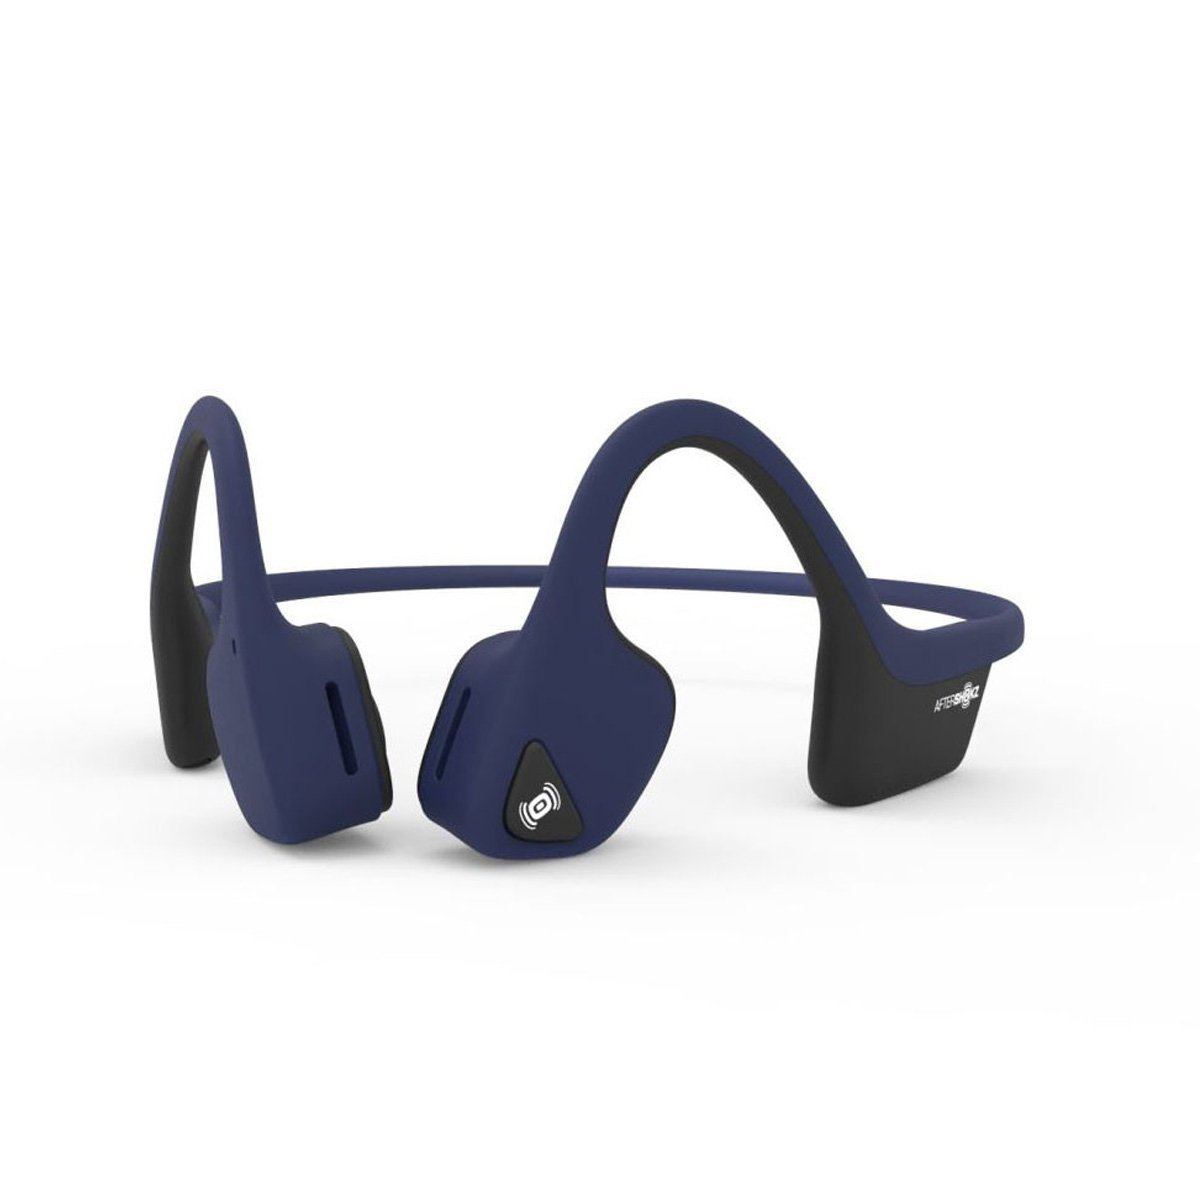 Aftershokz Air Wireless Bluetooth Headphones